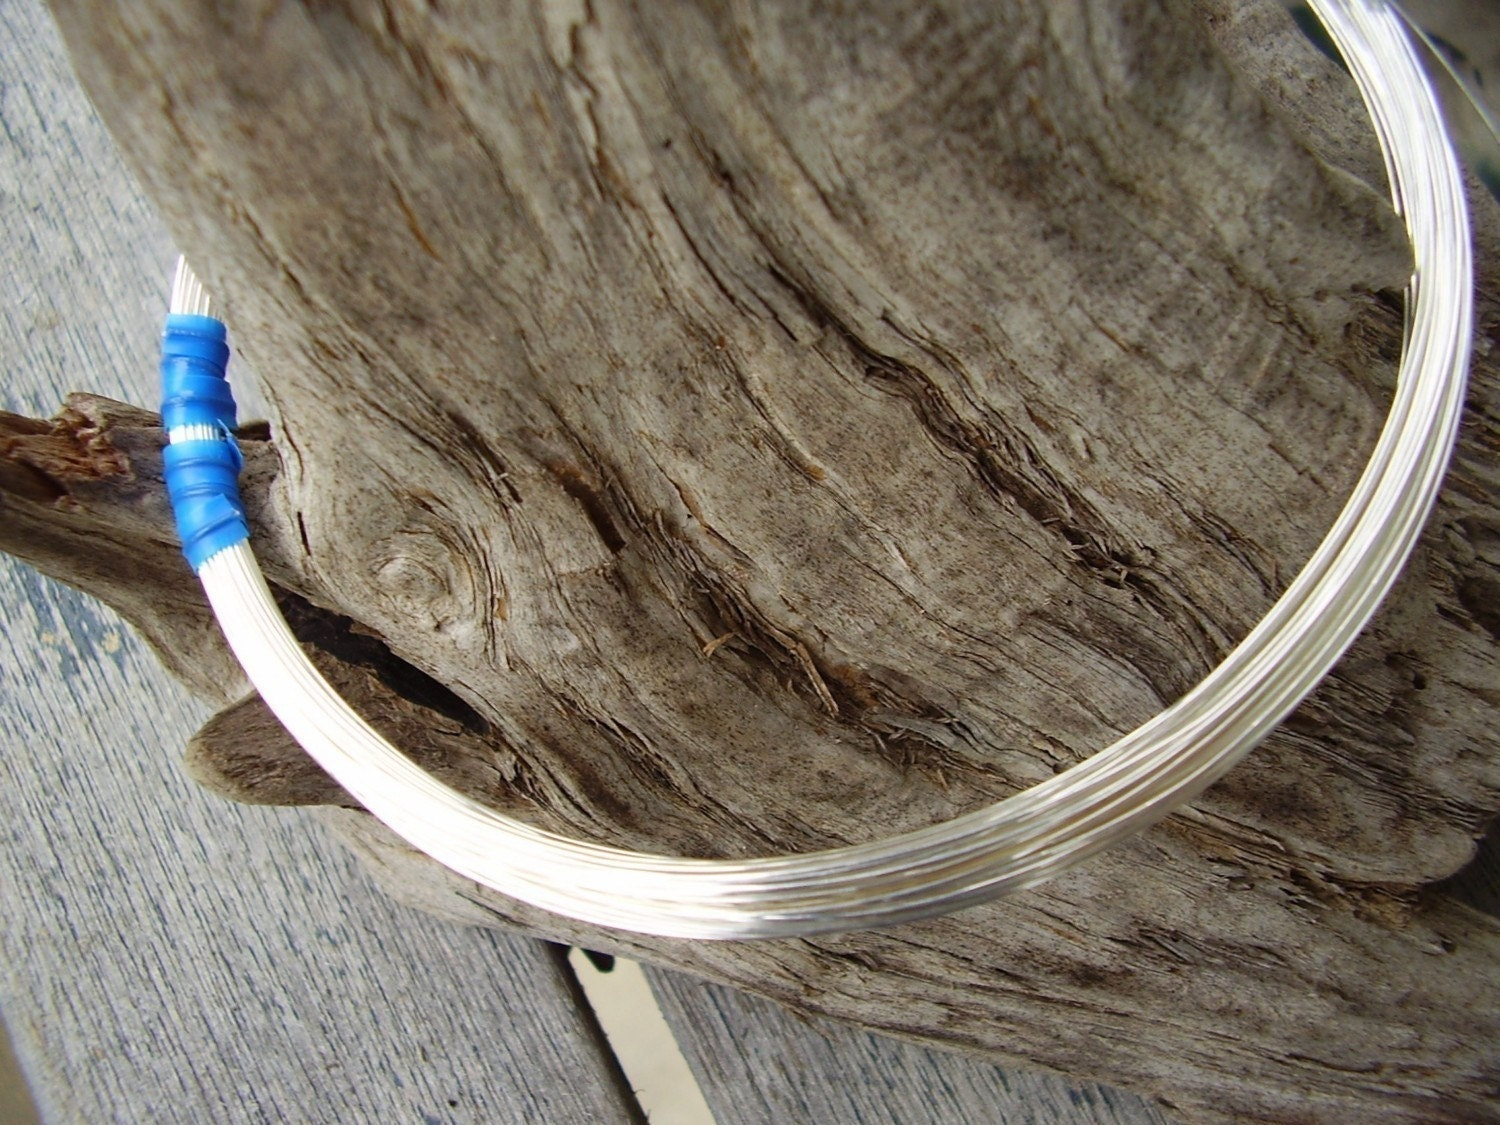 20 GauGe .999 FinE SilVer WiRe 3 Ft. from nightstar on Etsy Studio